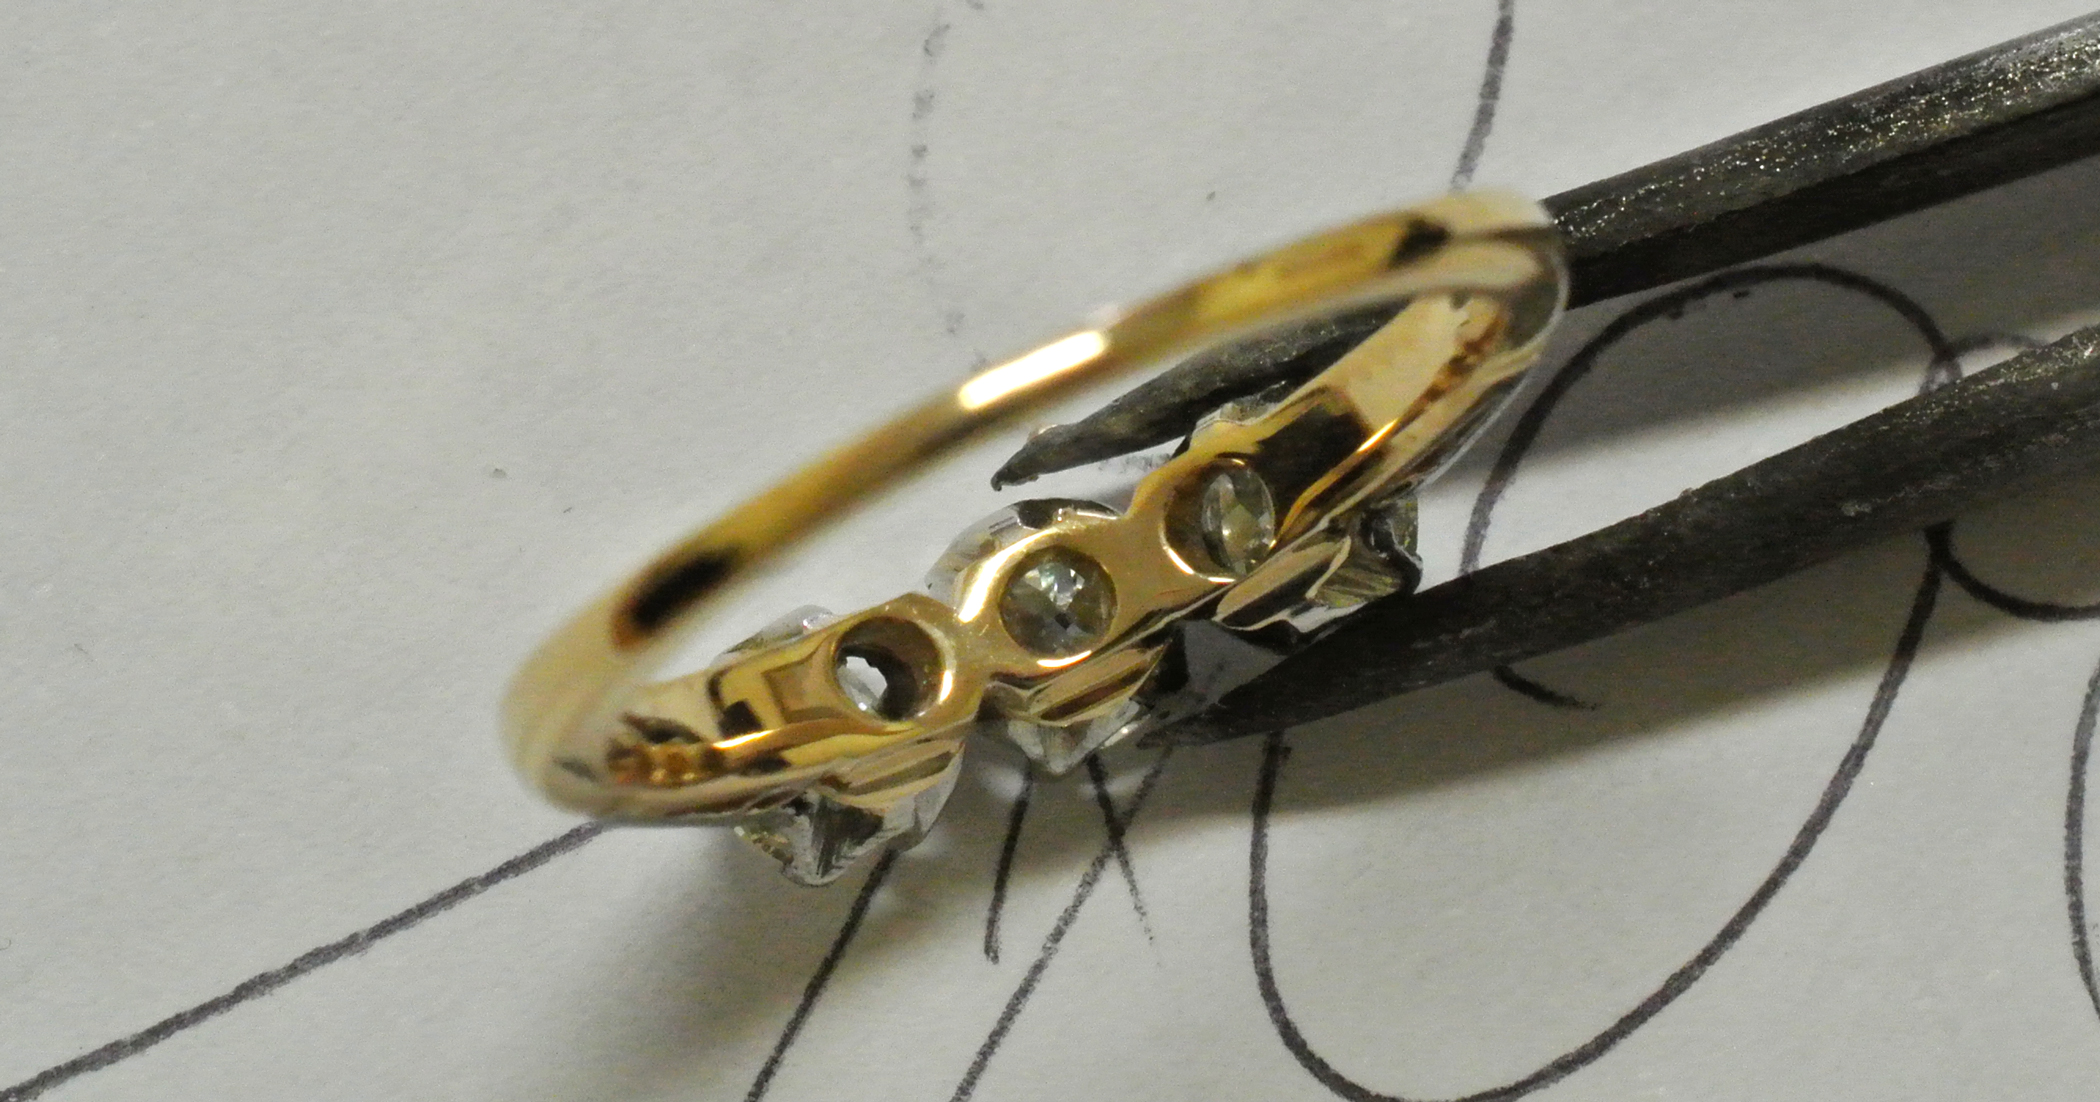 Example of a ring worn down from rubbing creating sharp edges.